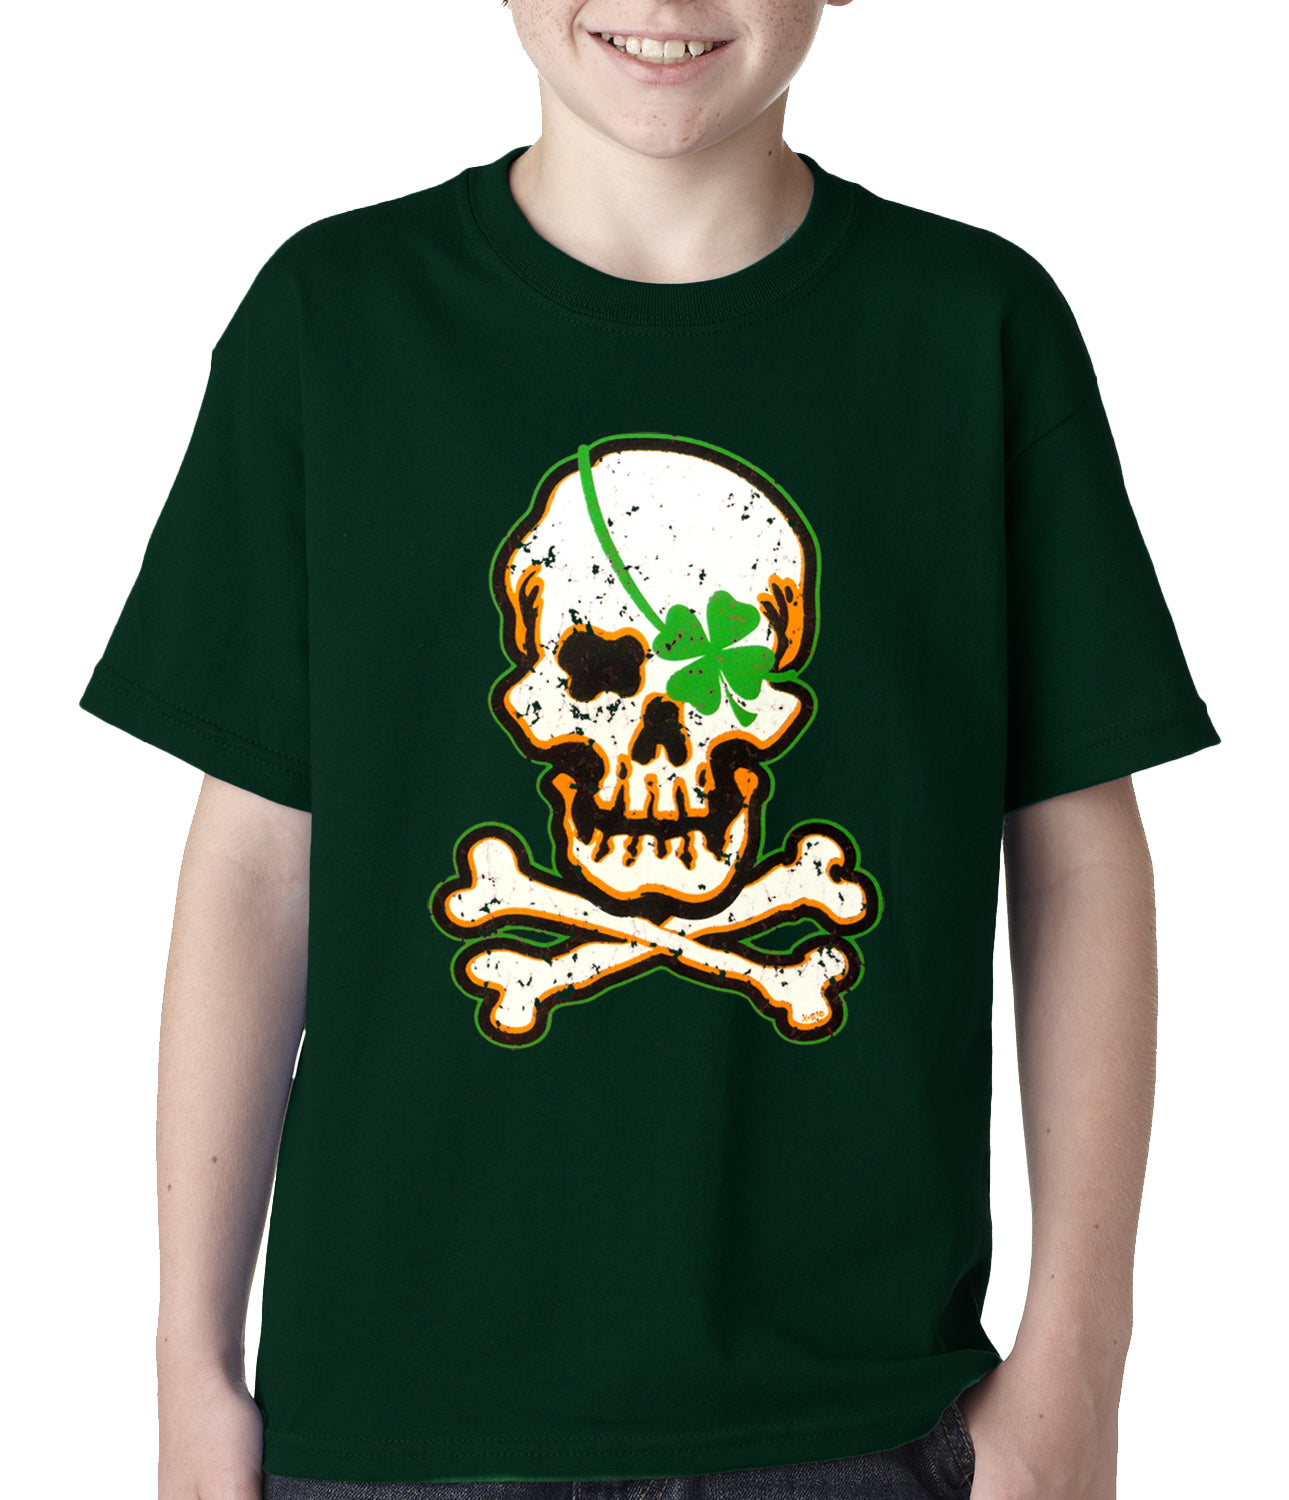 Irish Shamrock Skull and Crossbones Kids T-shirt